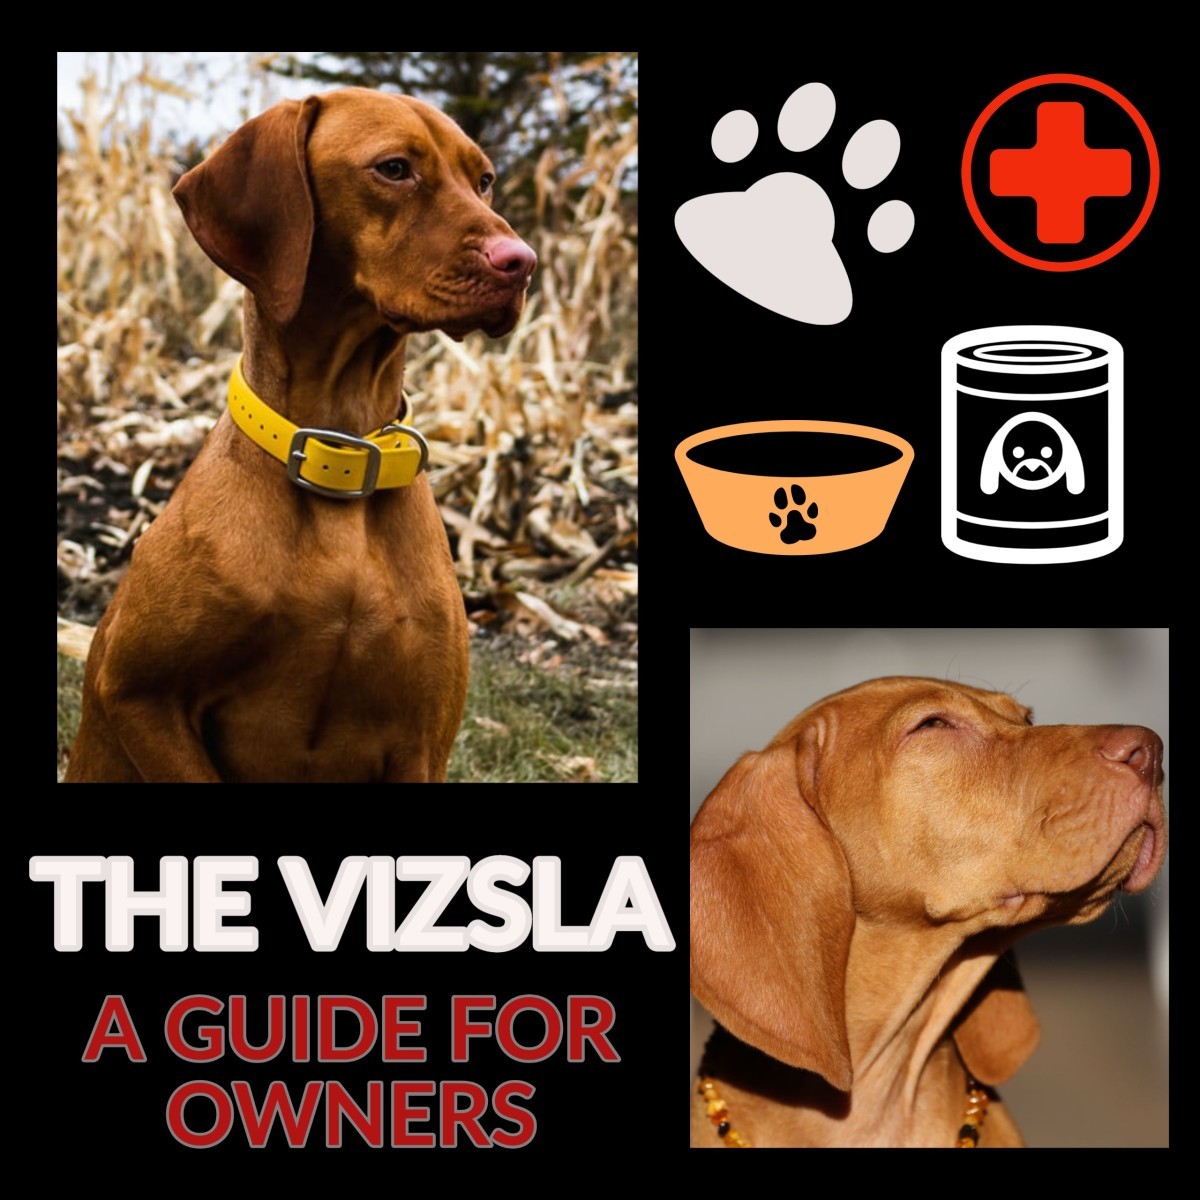 The Vizsla: A Guide for Owners